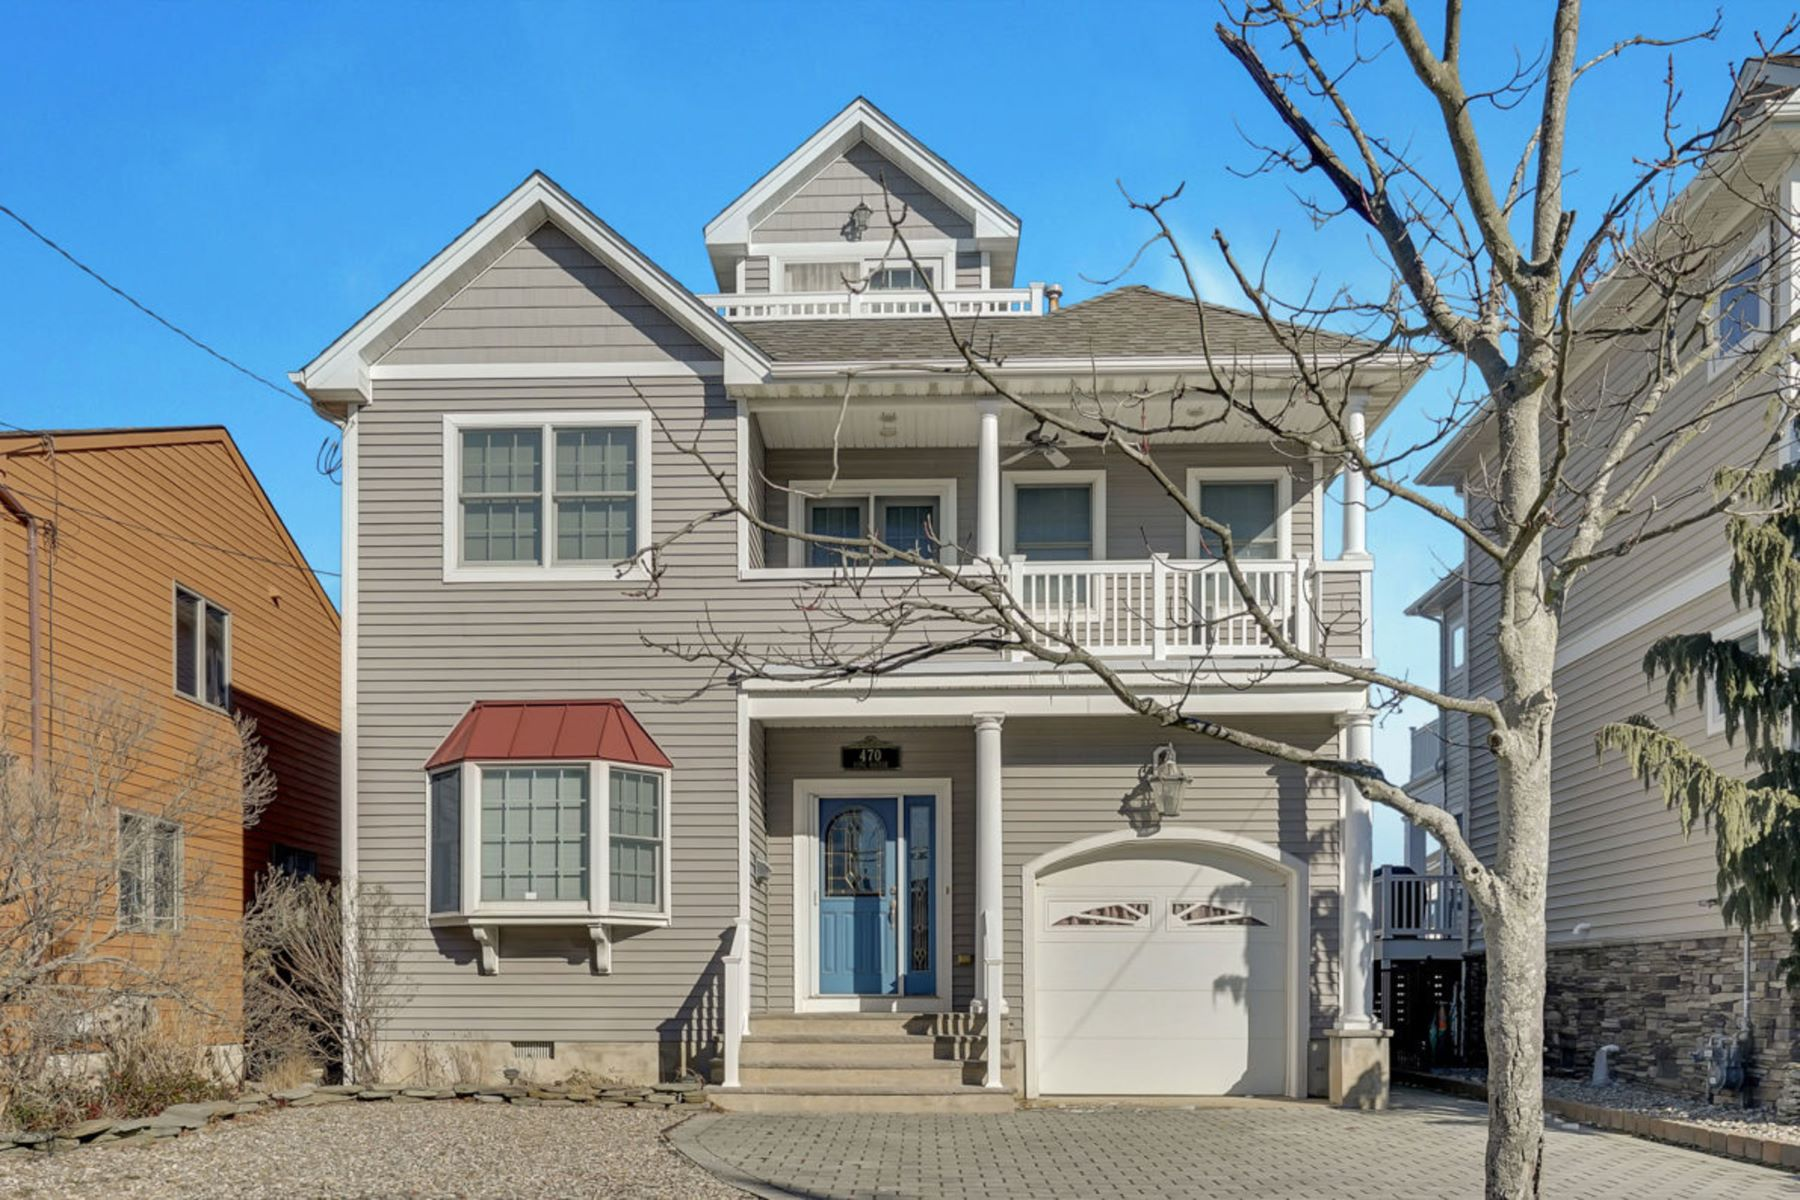 Single Family Home for Sale at Close to Beach 470 Long Ave, Manasquan, New Jersey 08736 United States